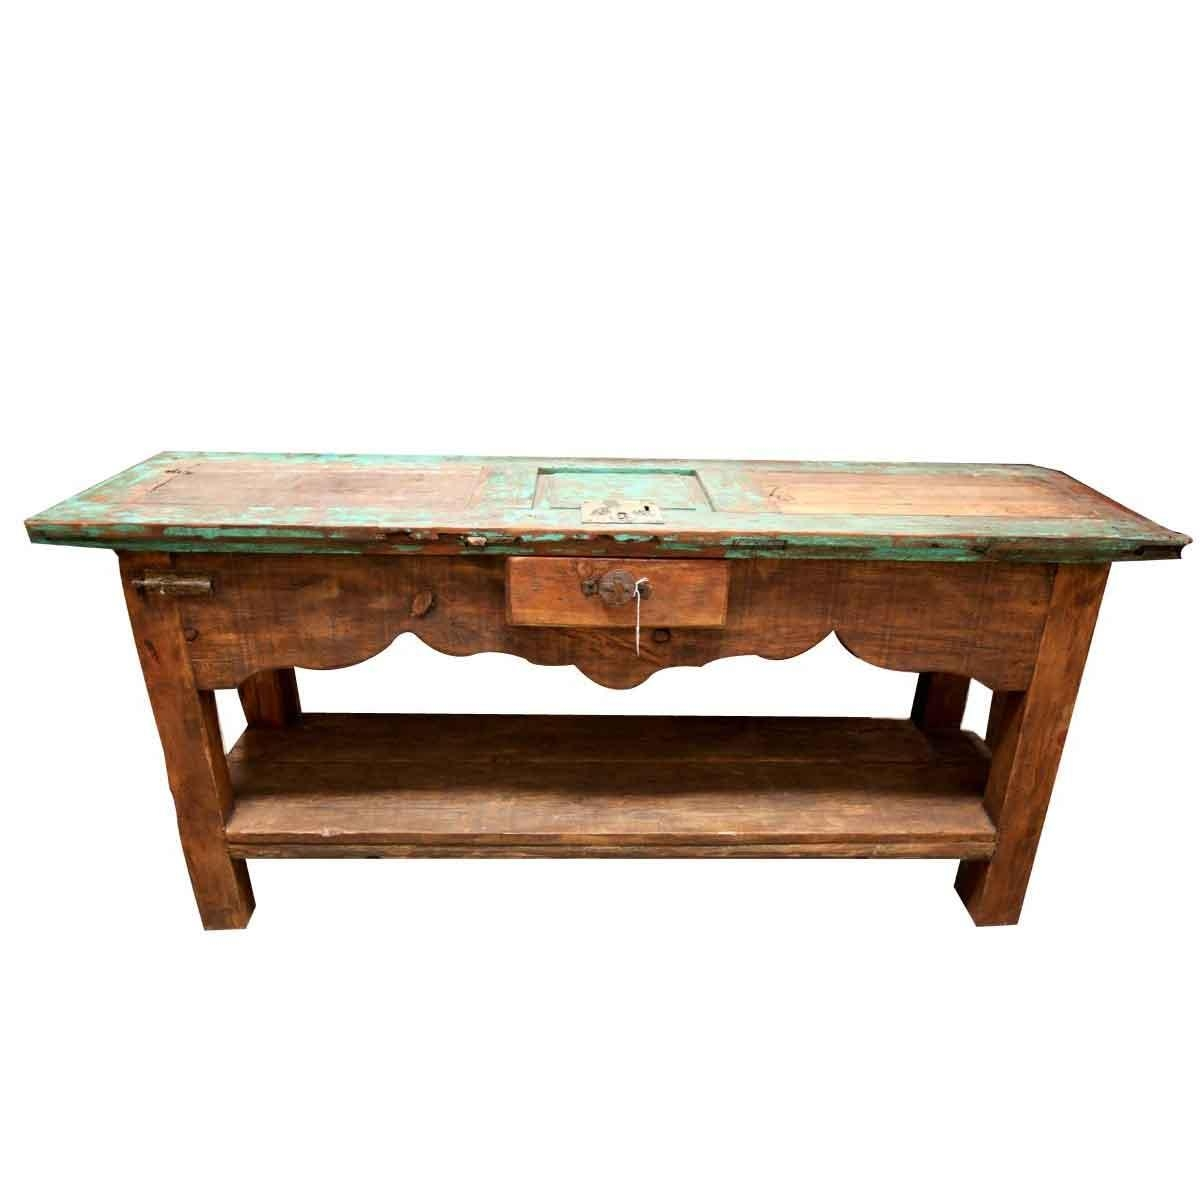 Sofa Tables | Order Rustic Sofa Table Online For Barnwood Sofa Tables (View 20 of 20)